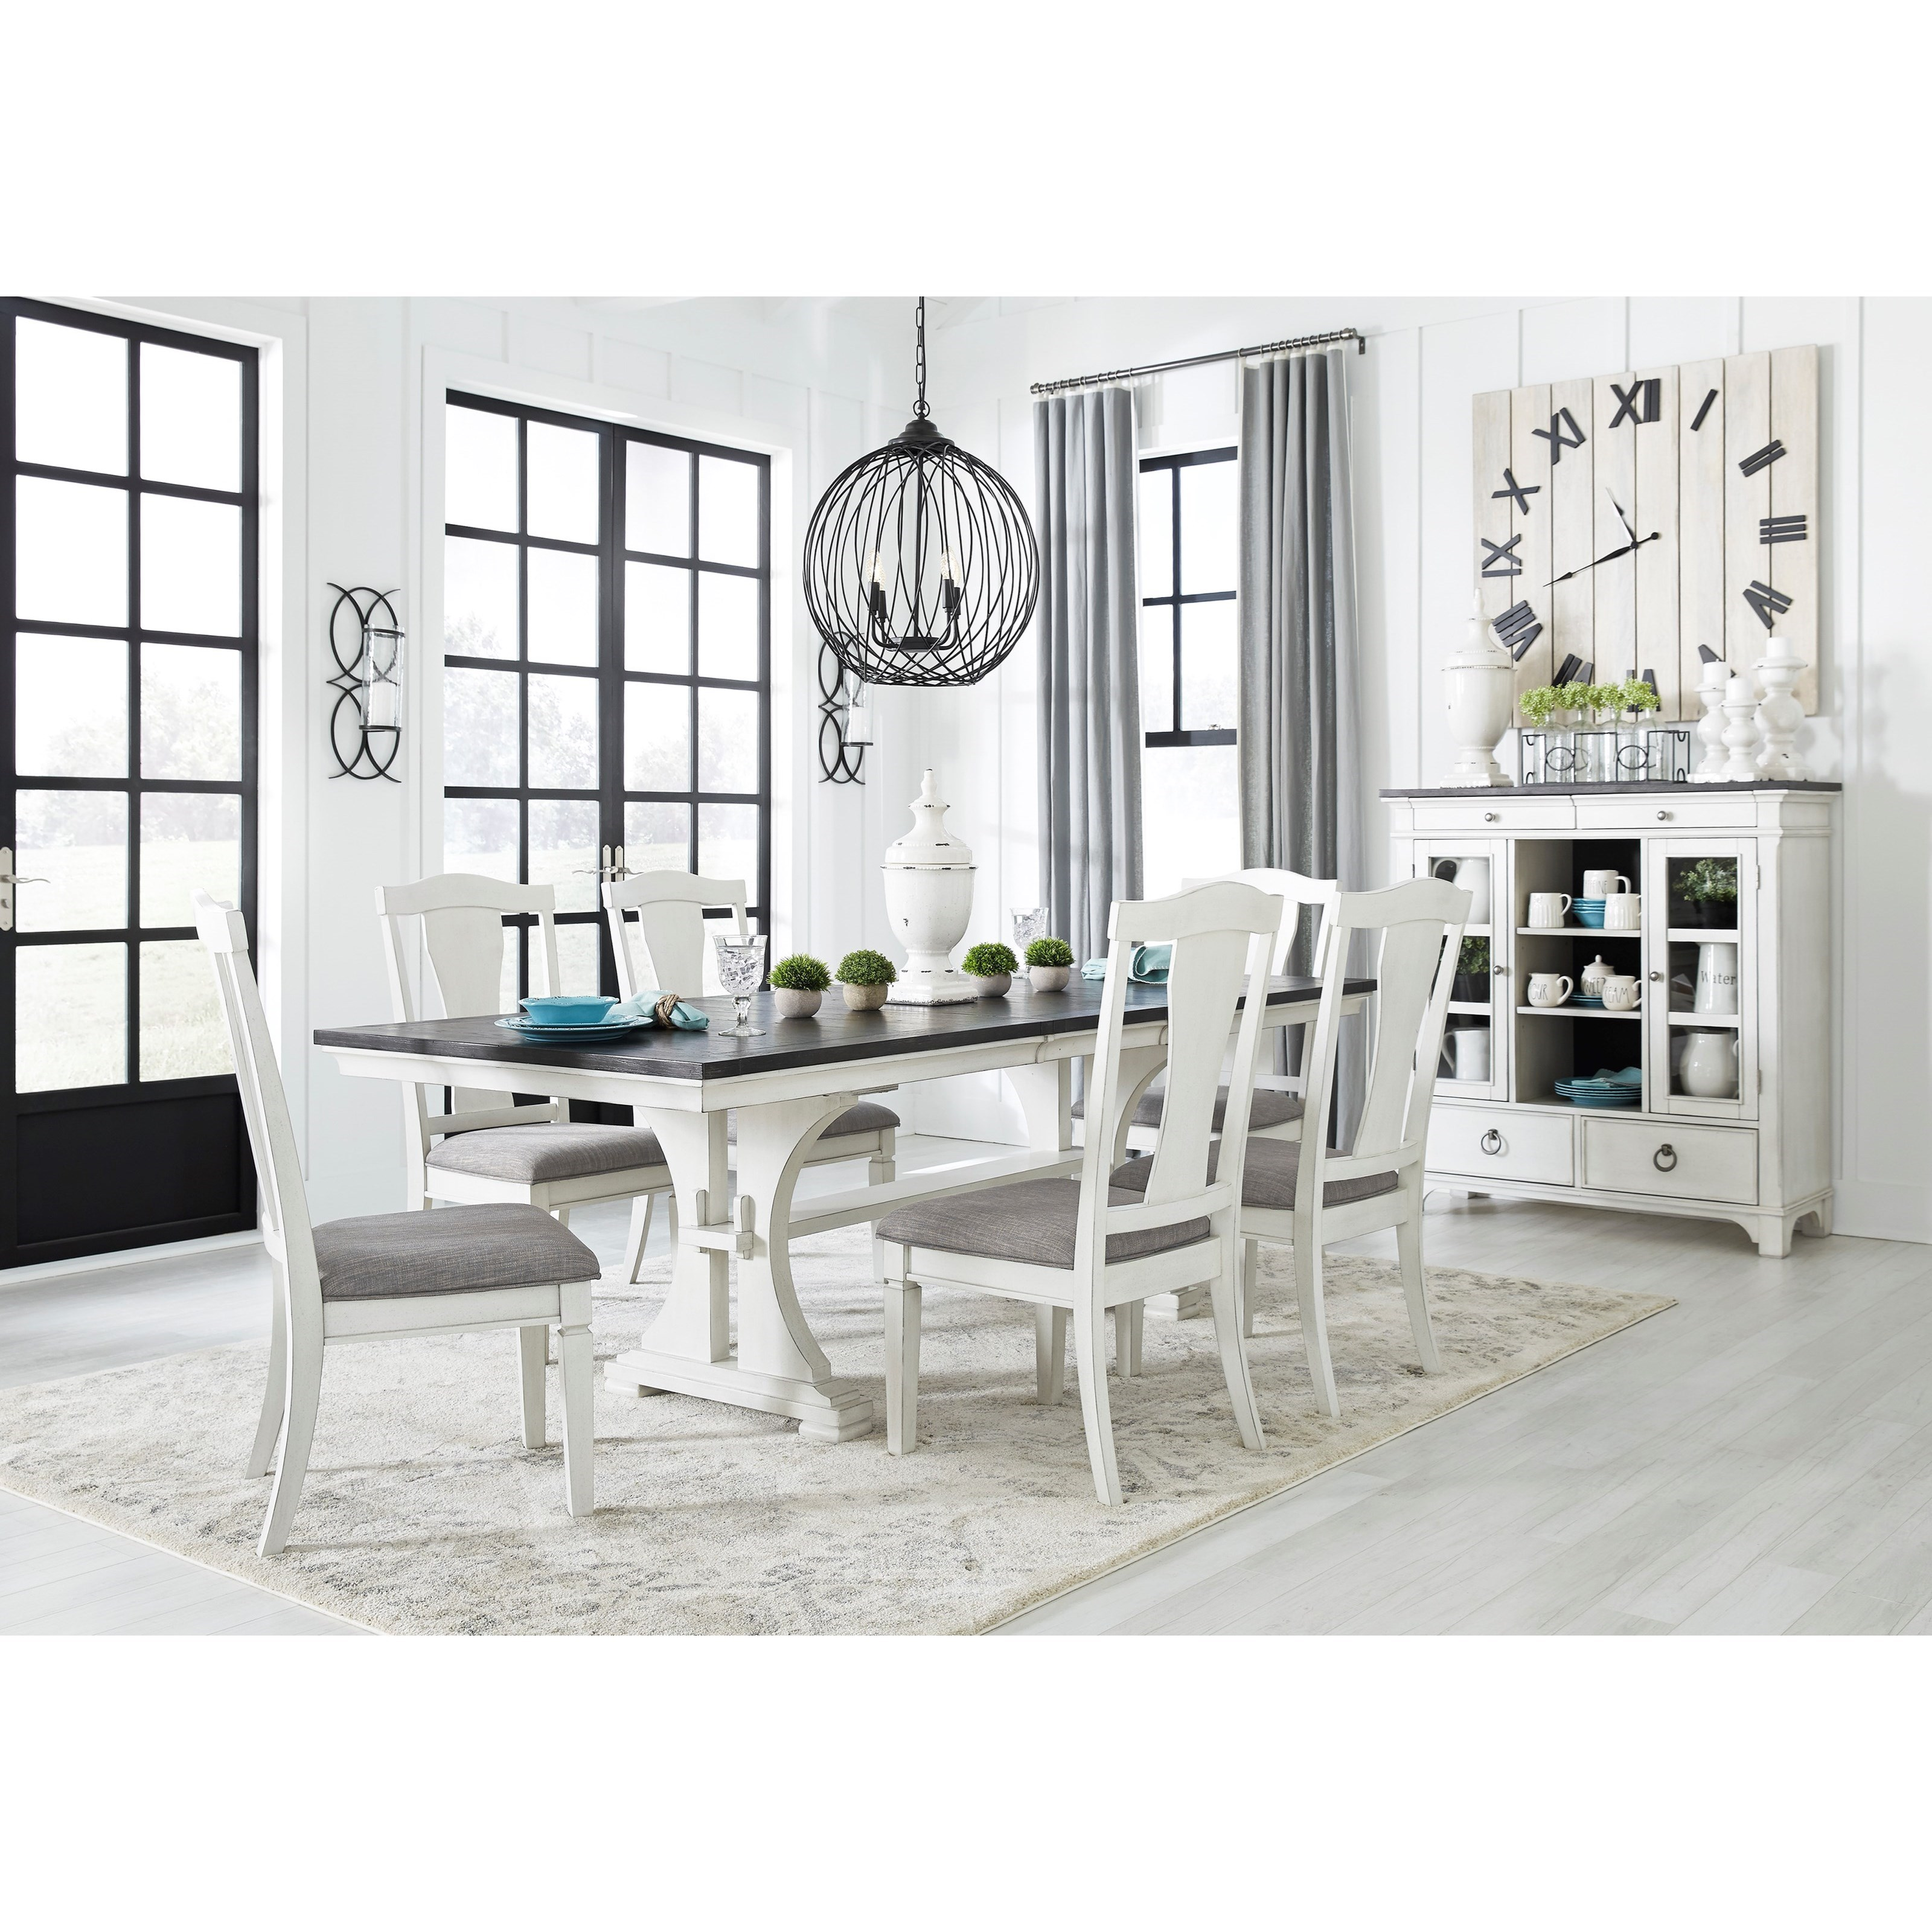 Nashbryn Dining Room Group by Benchcraft at Northeast Factory Direct